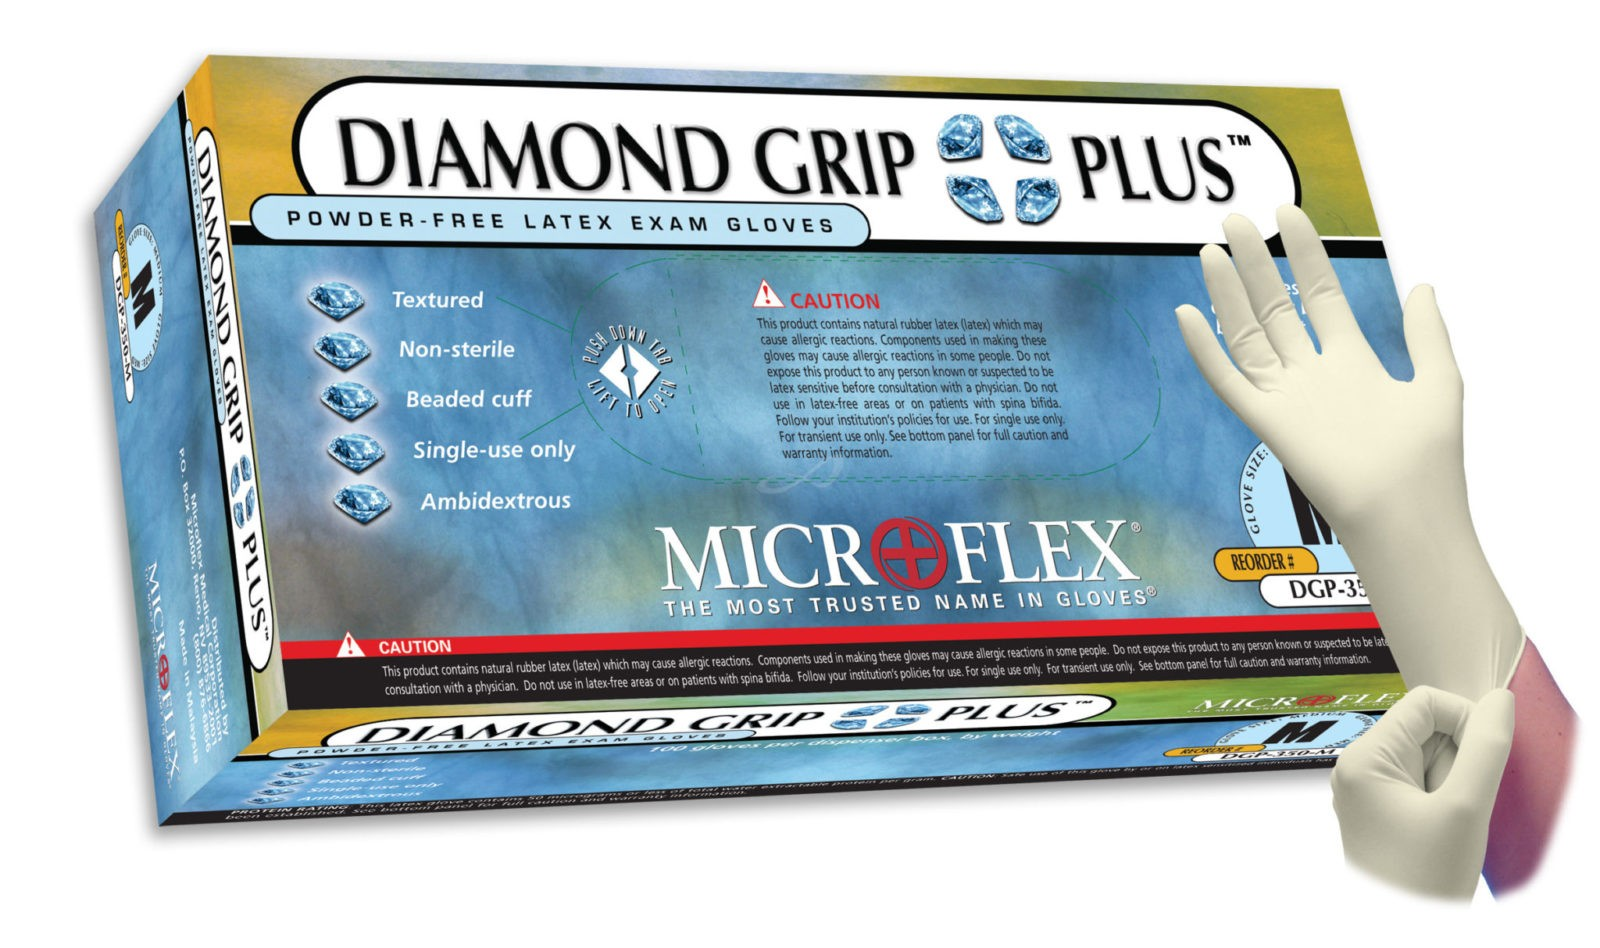 Microflex Diamond Grip Plus DGP-350 powder free latex exam glove